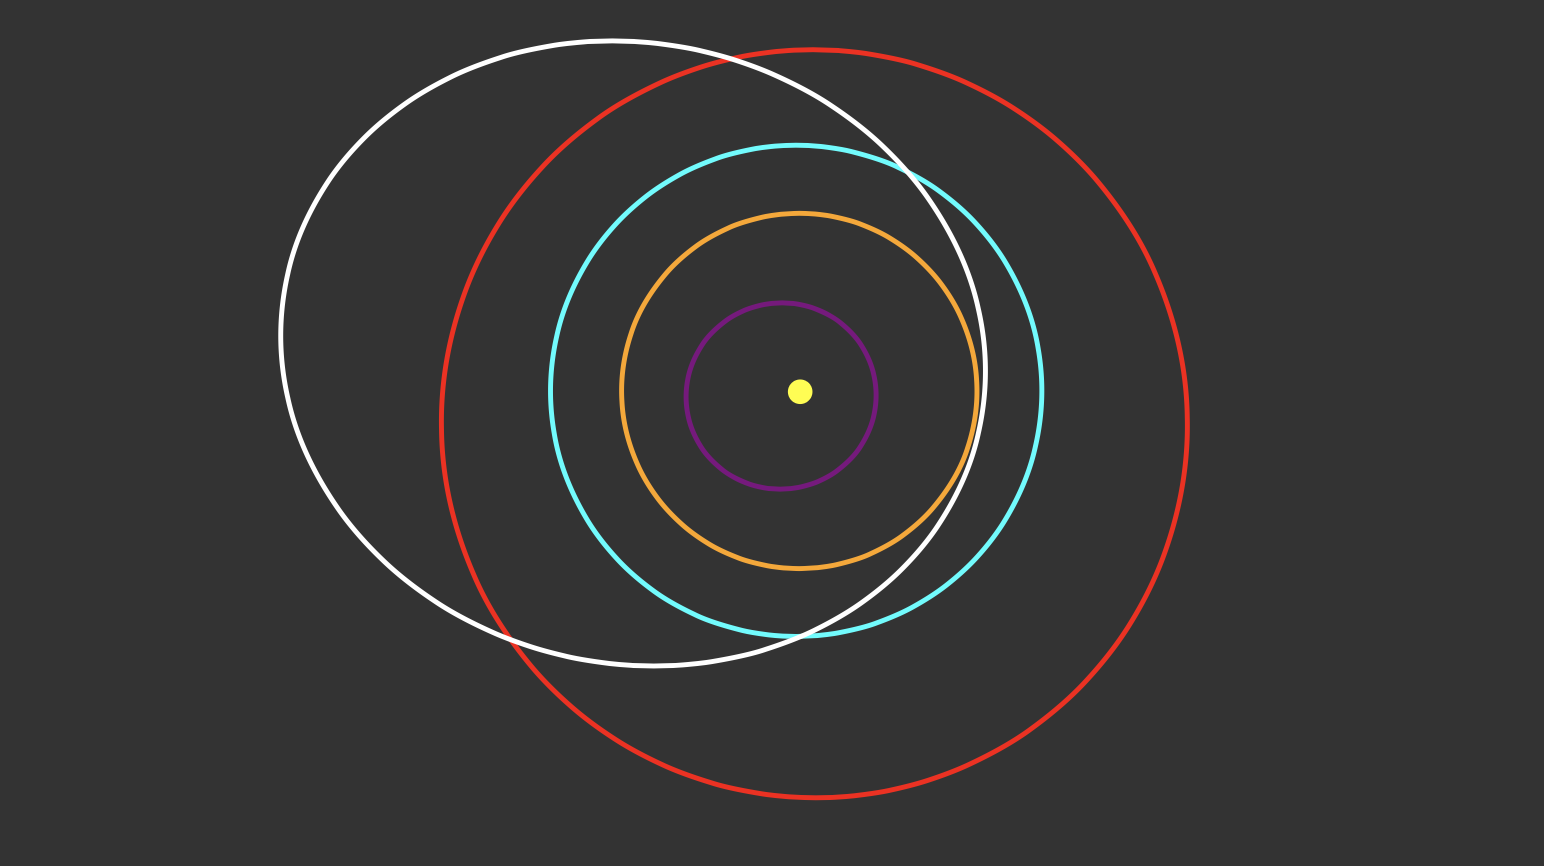 Blue orbit is the Earth. White eclipse marks orbit of the asteroid 2100 Ra-Shalom.